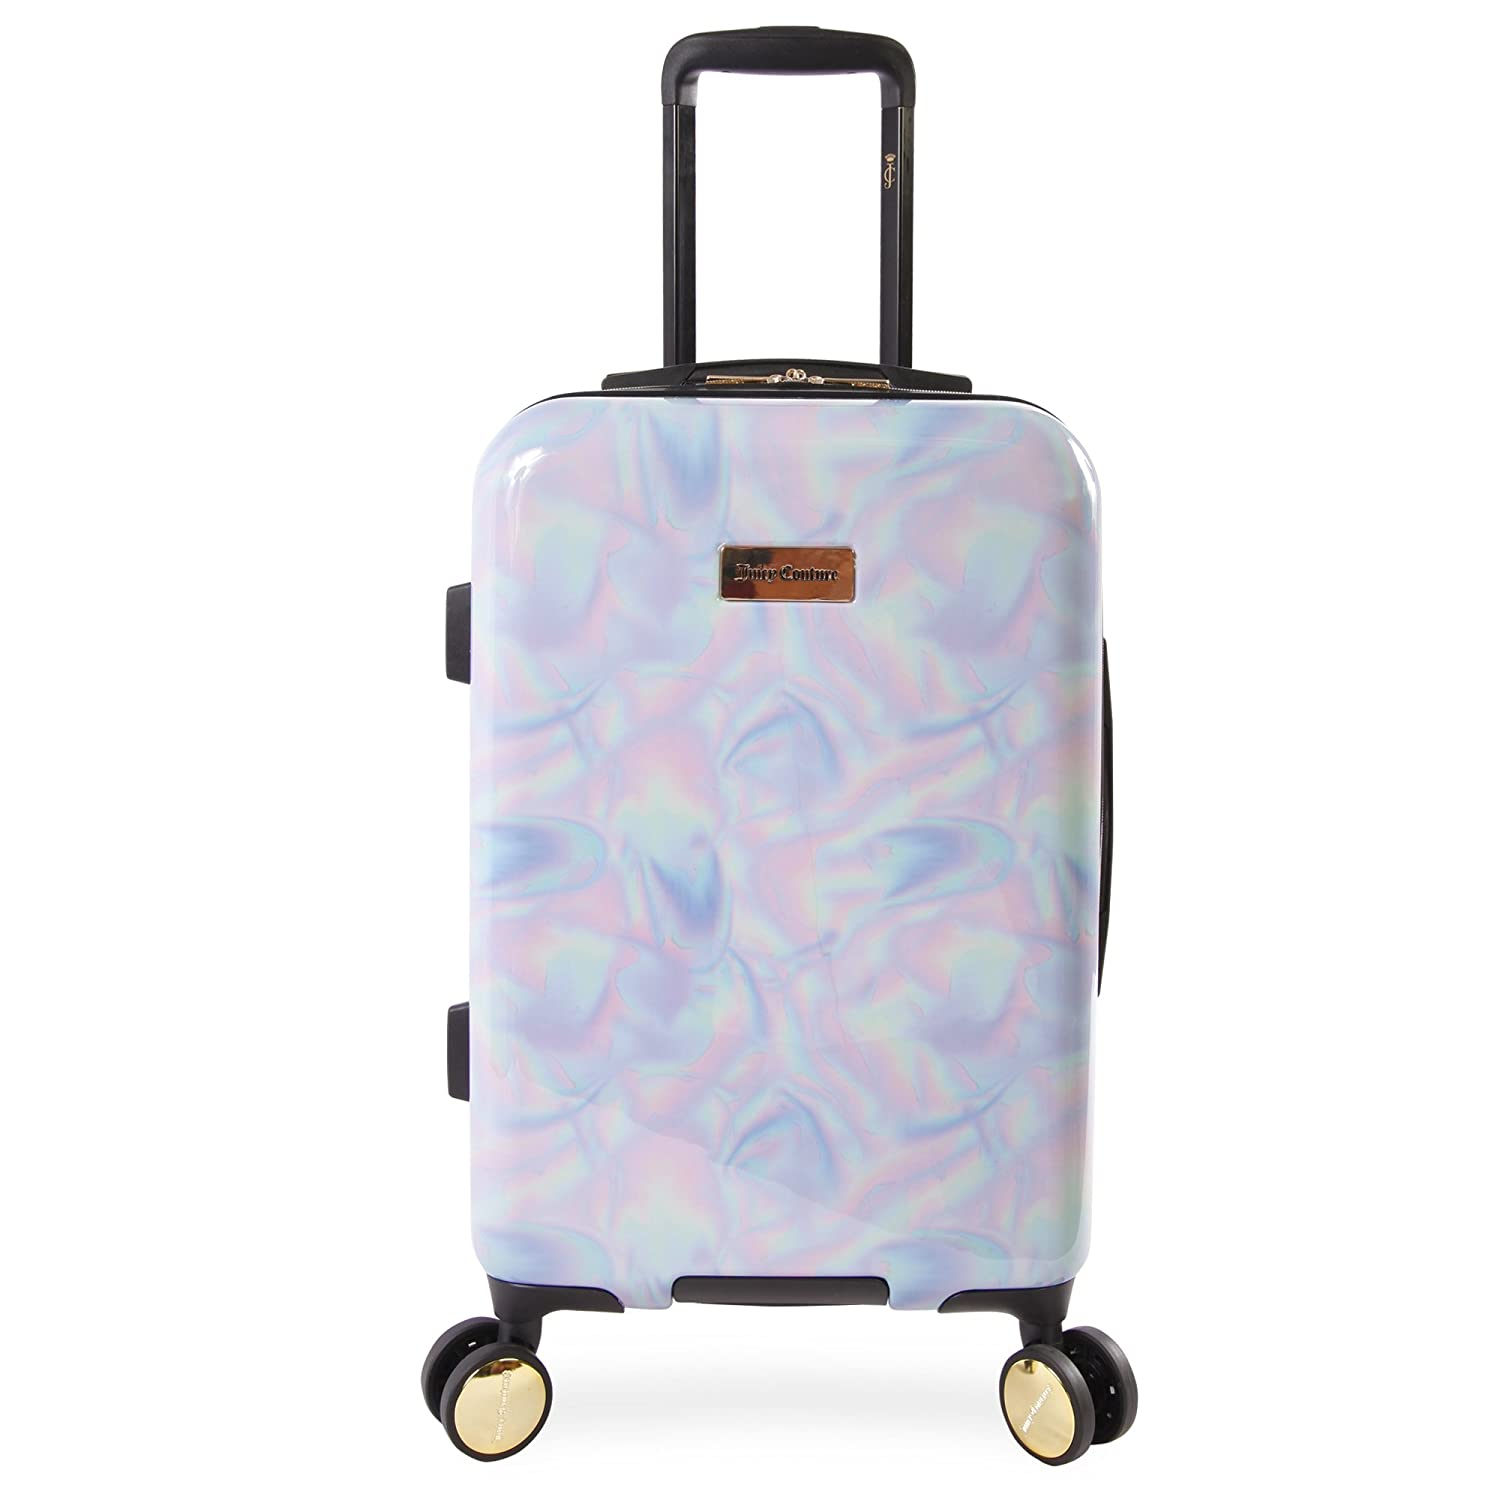 Juicy Couture 機内持ち込み手荷物 B07CDSX3ZF Holographic